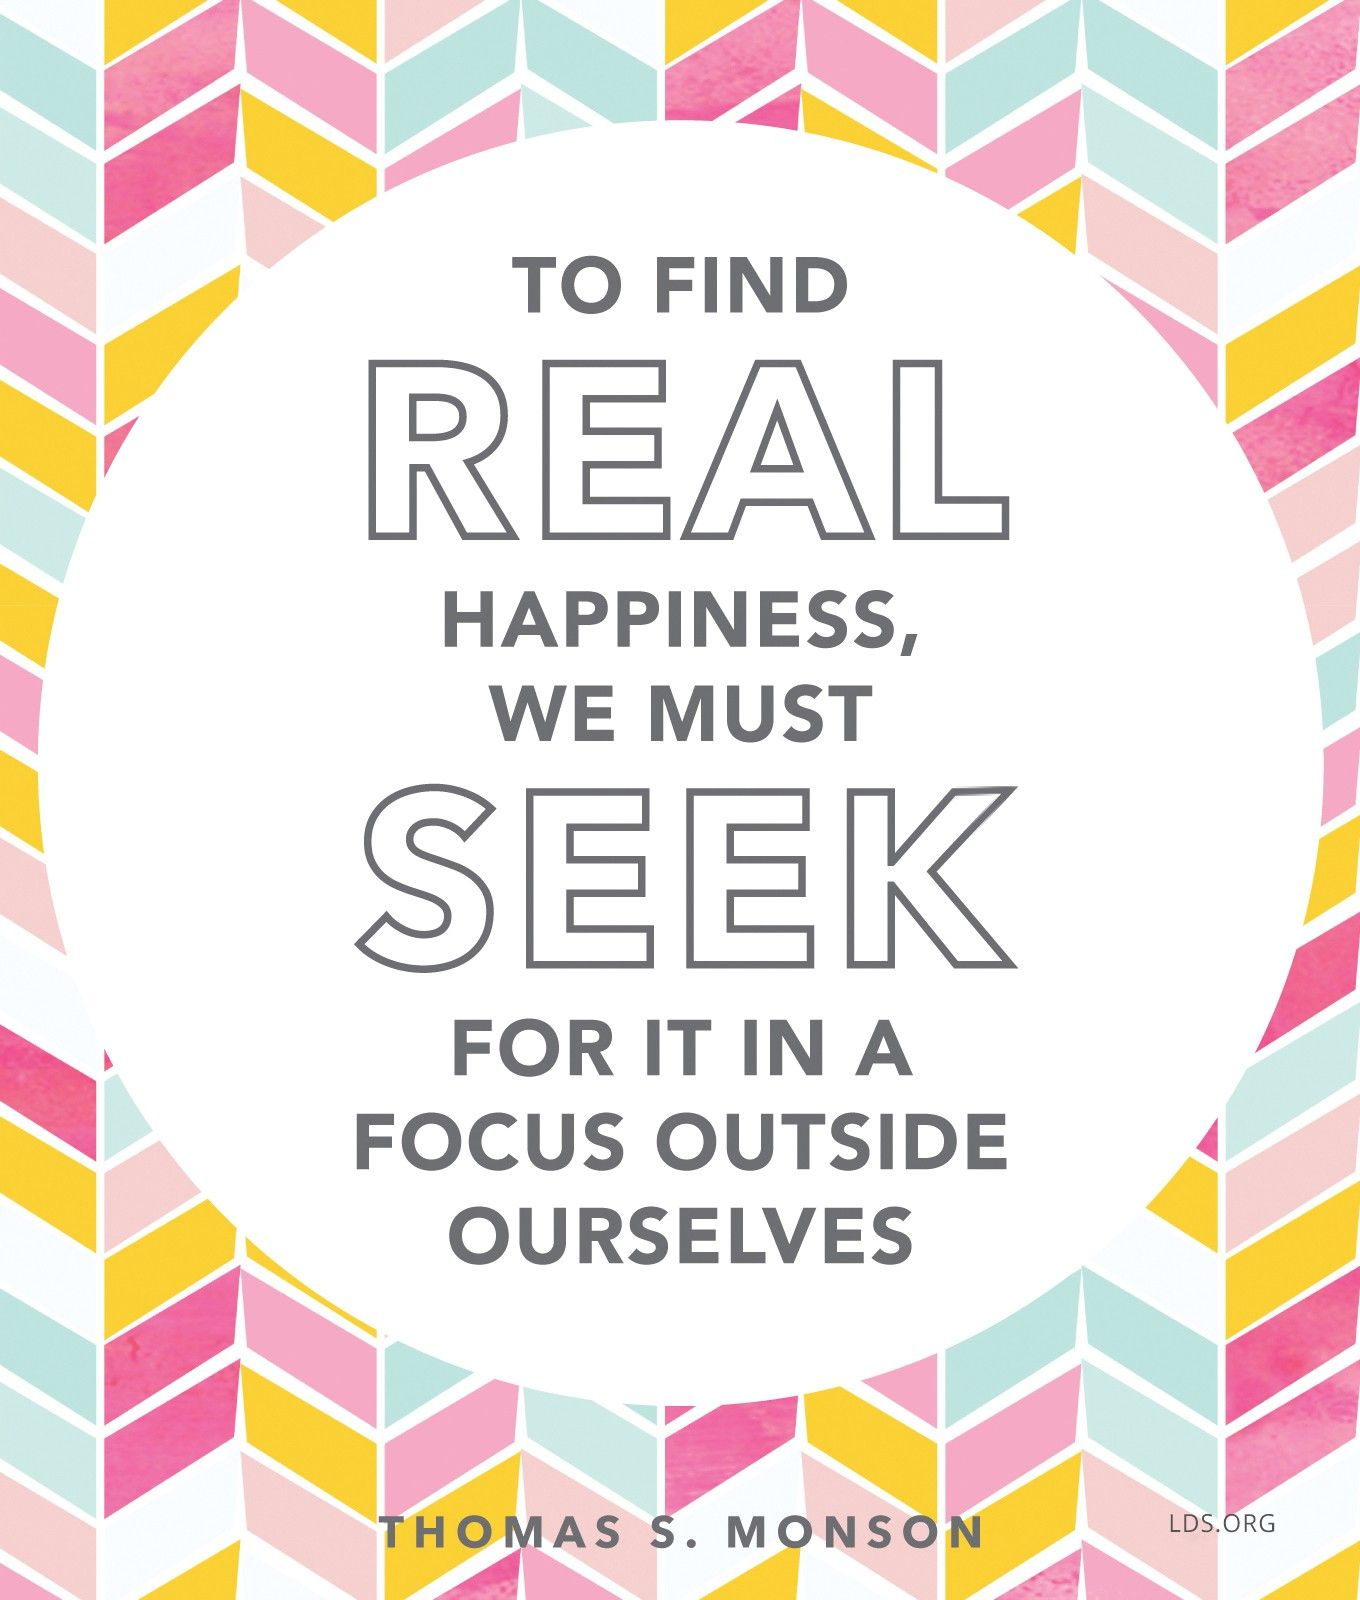 """""""To find real happiness, we must seek for it in a focus outside ourselves.""""—President Thomas S. Monson, """"The Joy of Service"""""""